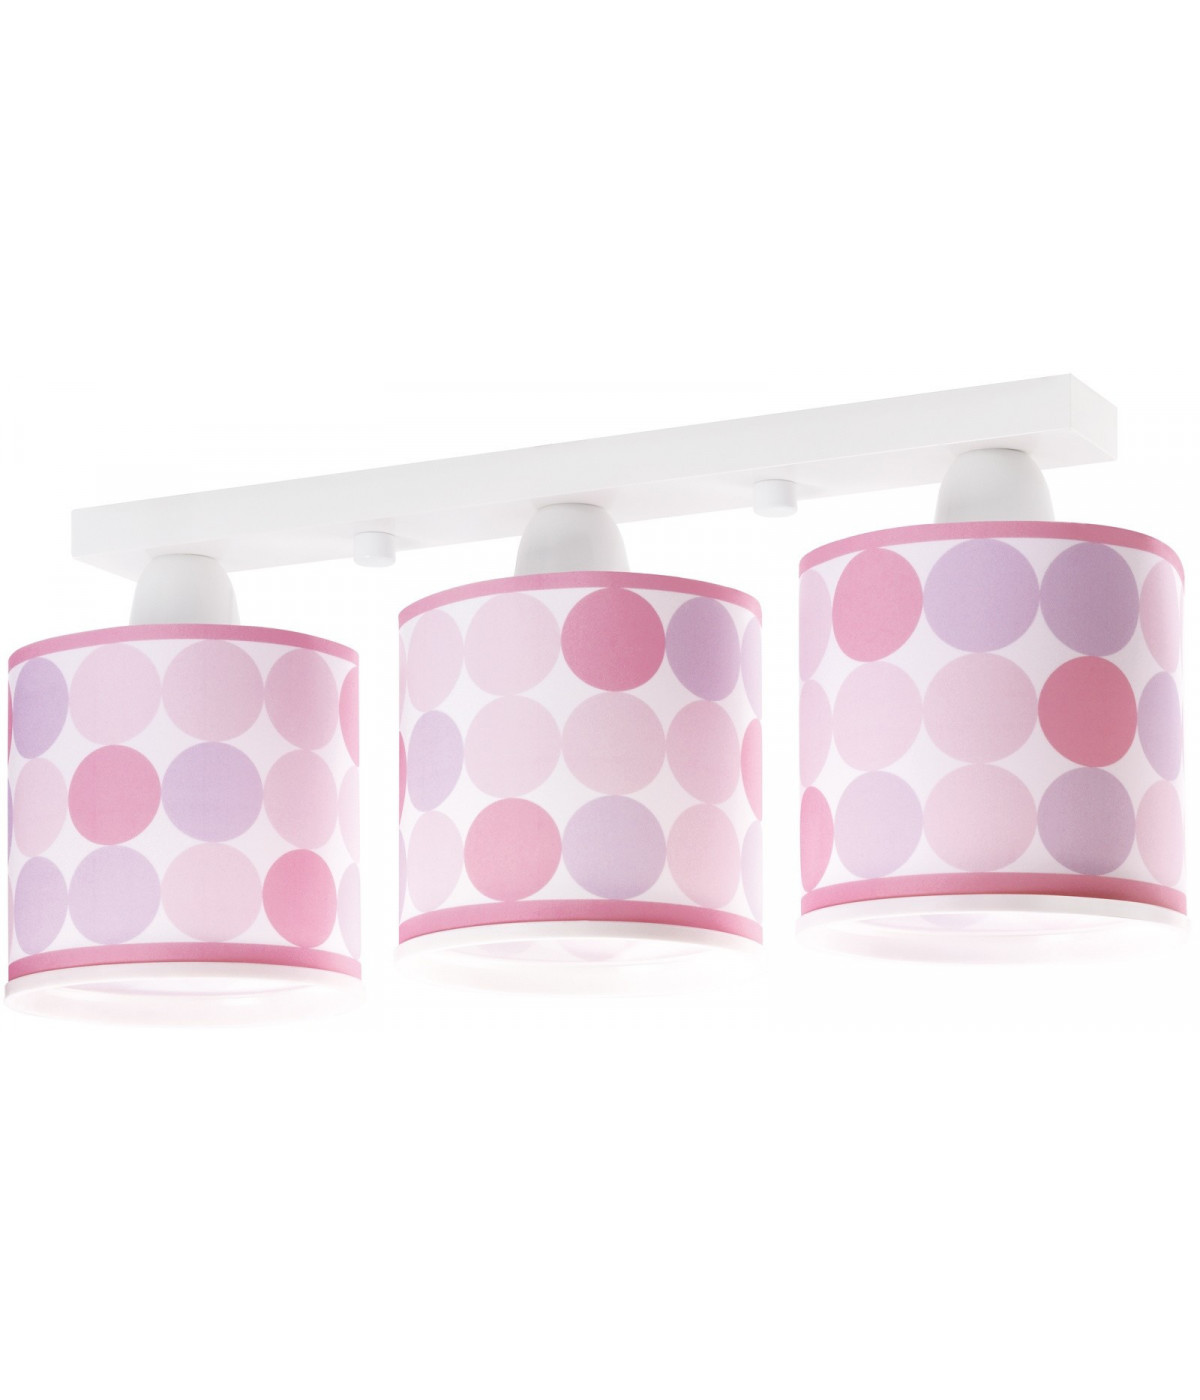 3 light Children's Ceiling Lamp Colors pink